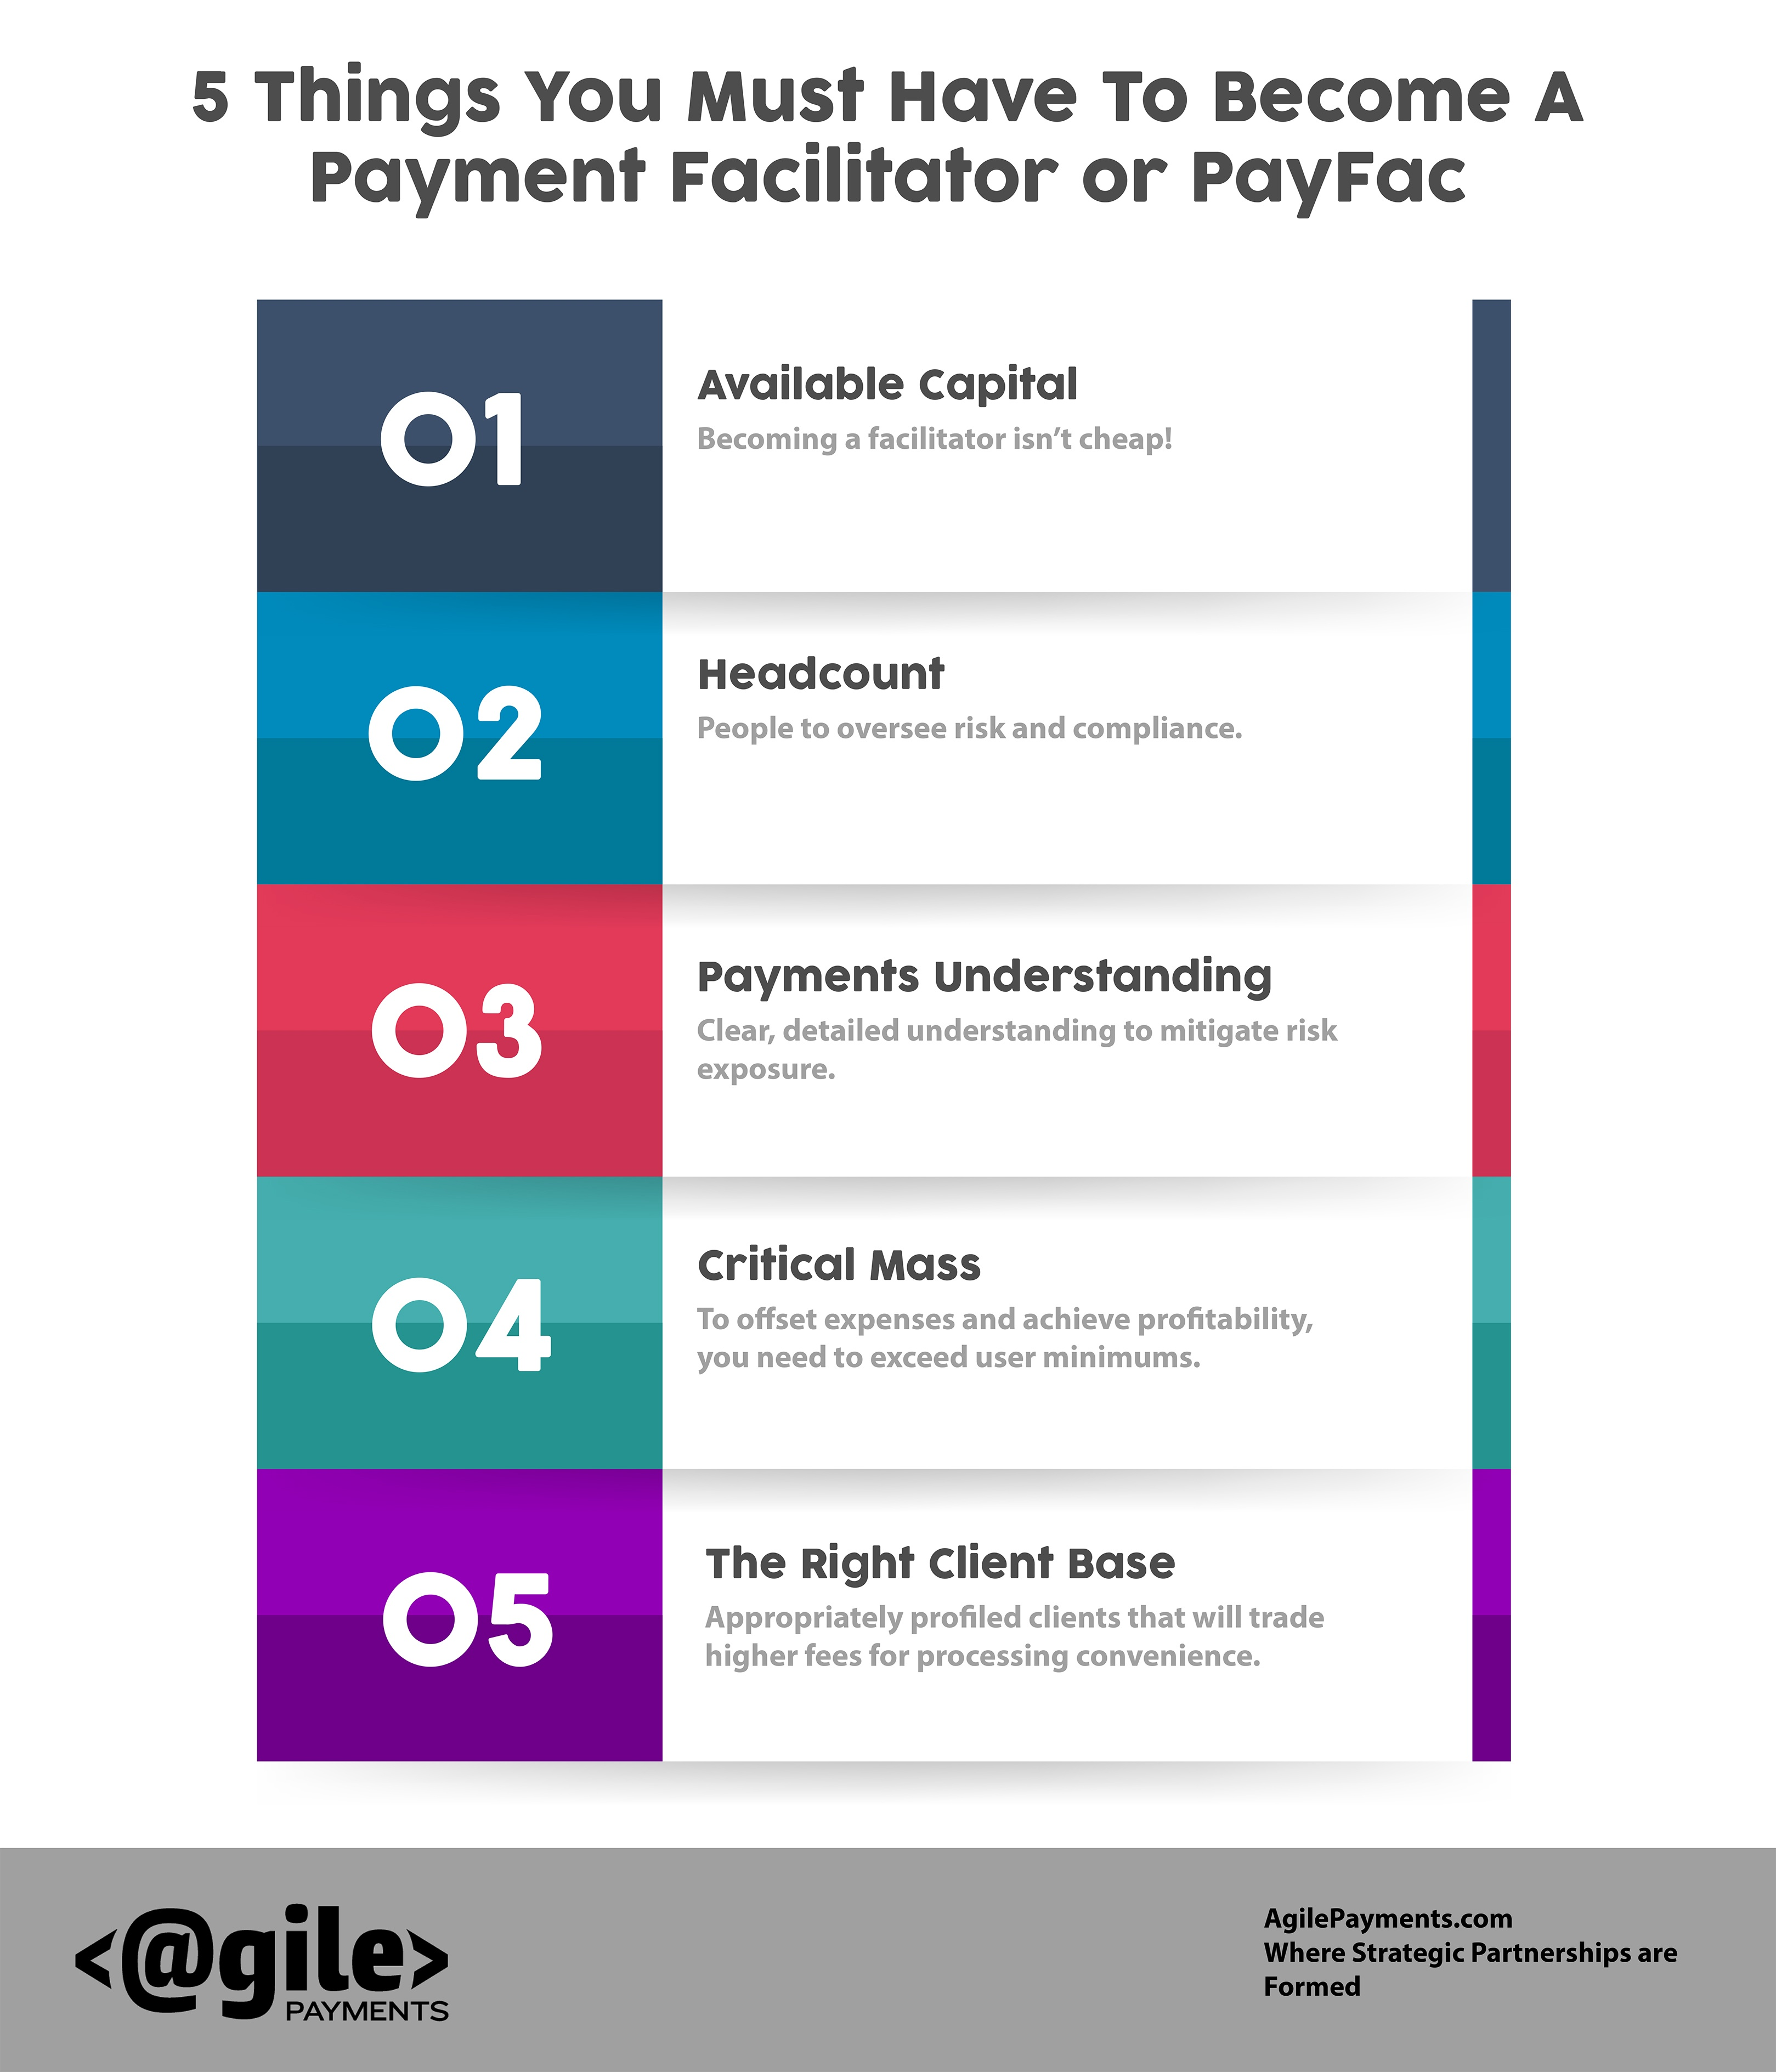 5_Things_You_Need_to_Become_a_Payment_Facilitator (1)